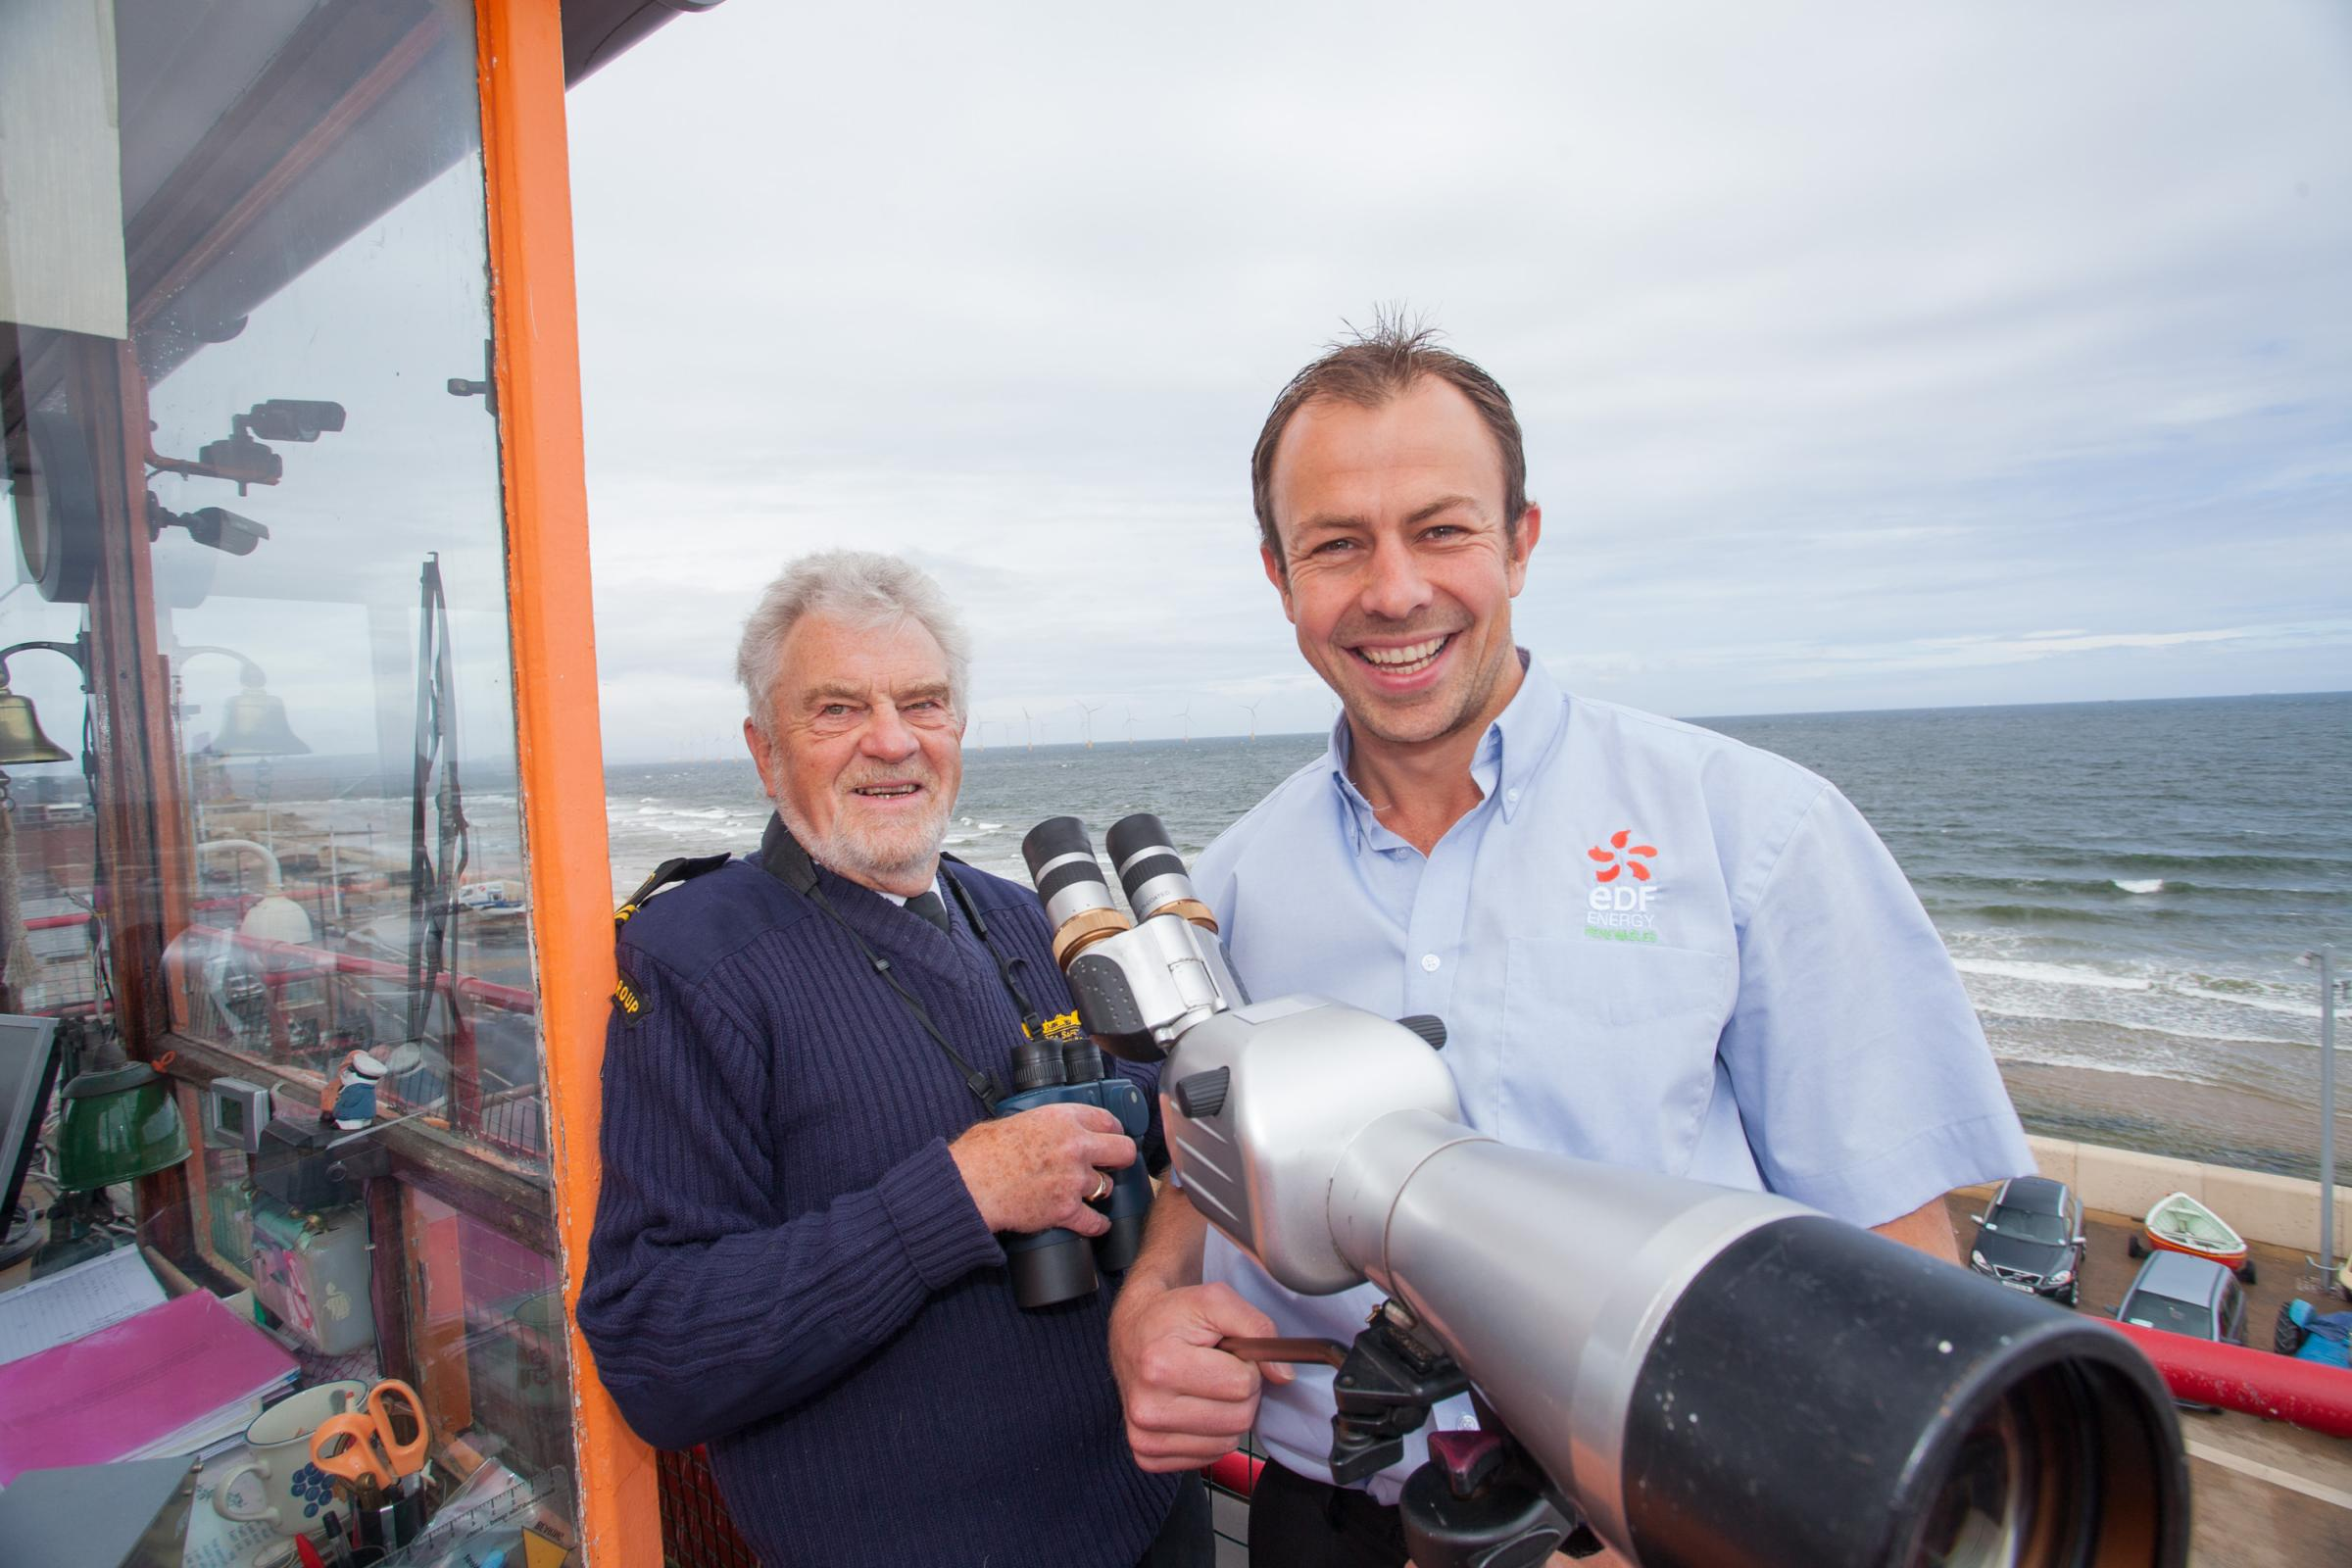 WATCHTOWER FUNDING: Trevor Smith (left) of Coastwatch Redcar with James Wilson of EDF Energy Renewables